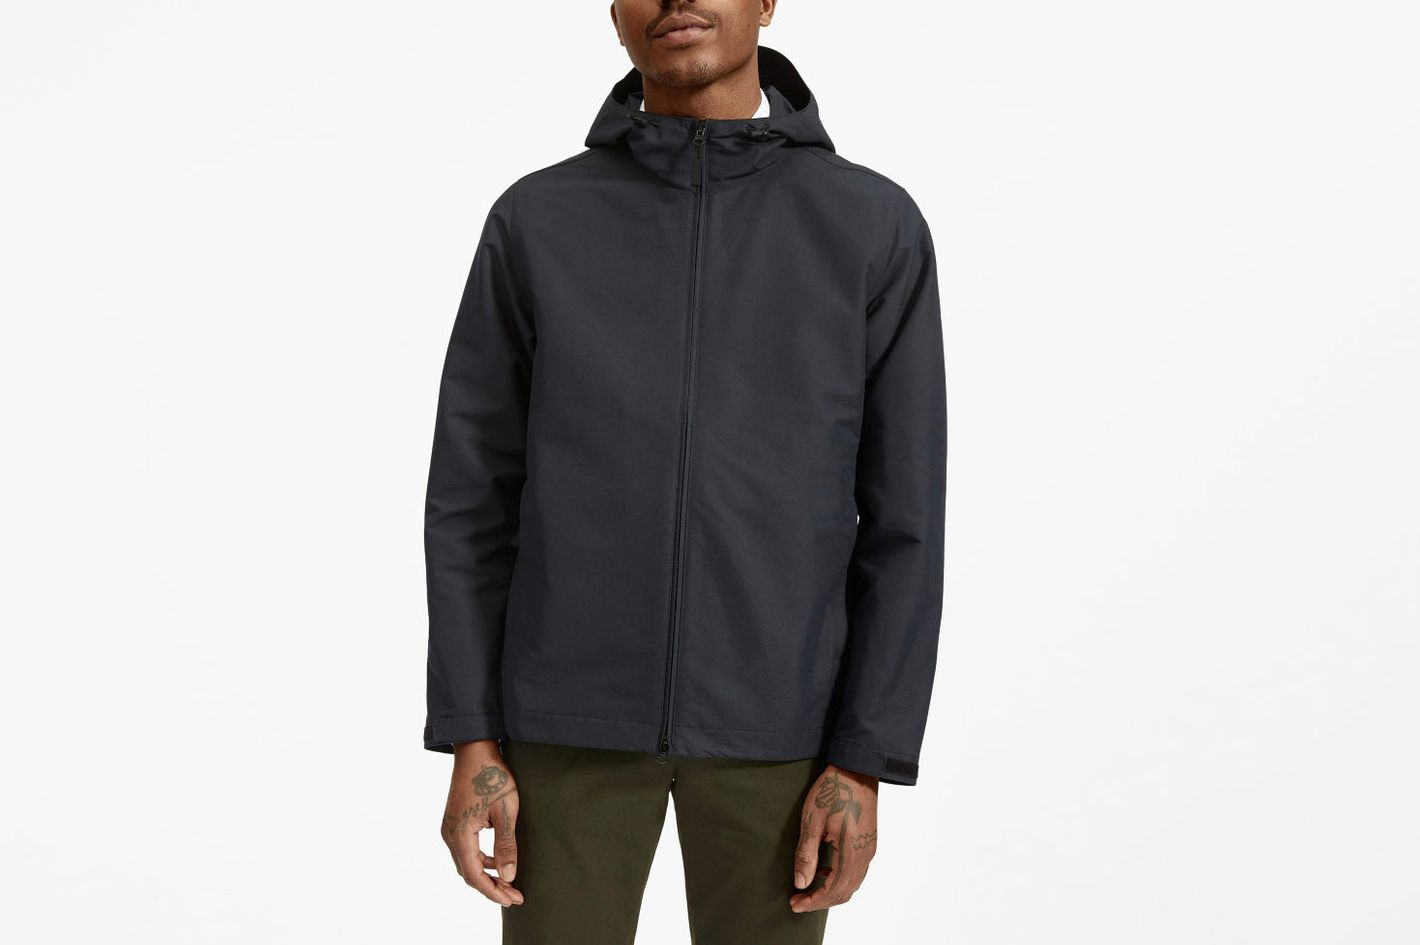 ec0d9e472 Everlane ReNew All-Weather Jacket